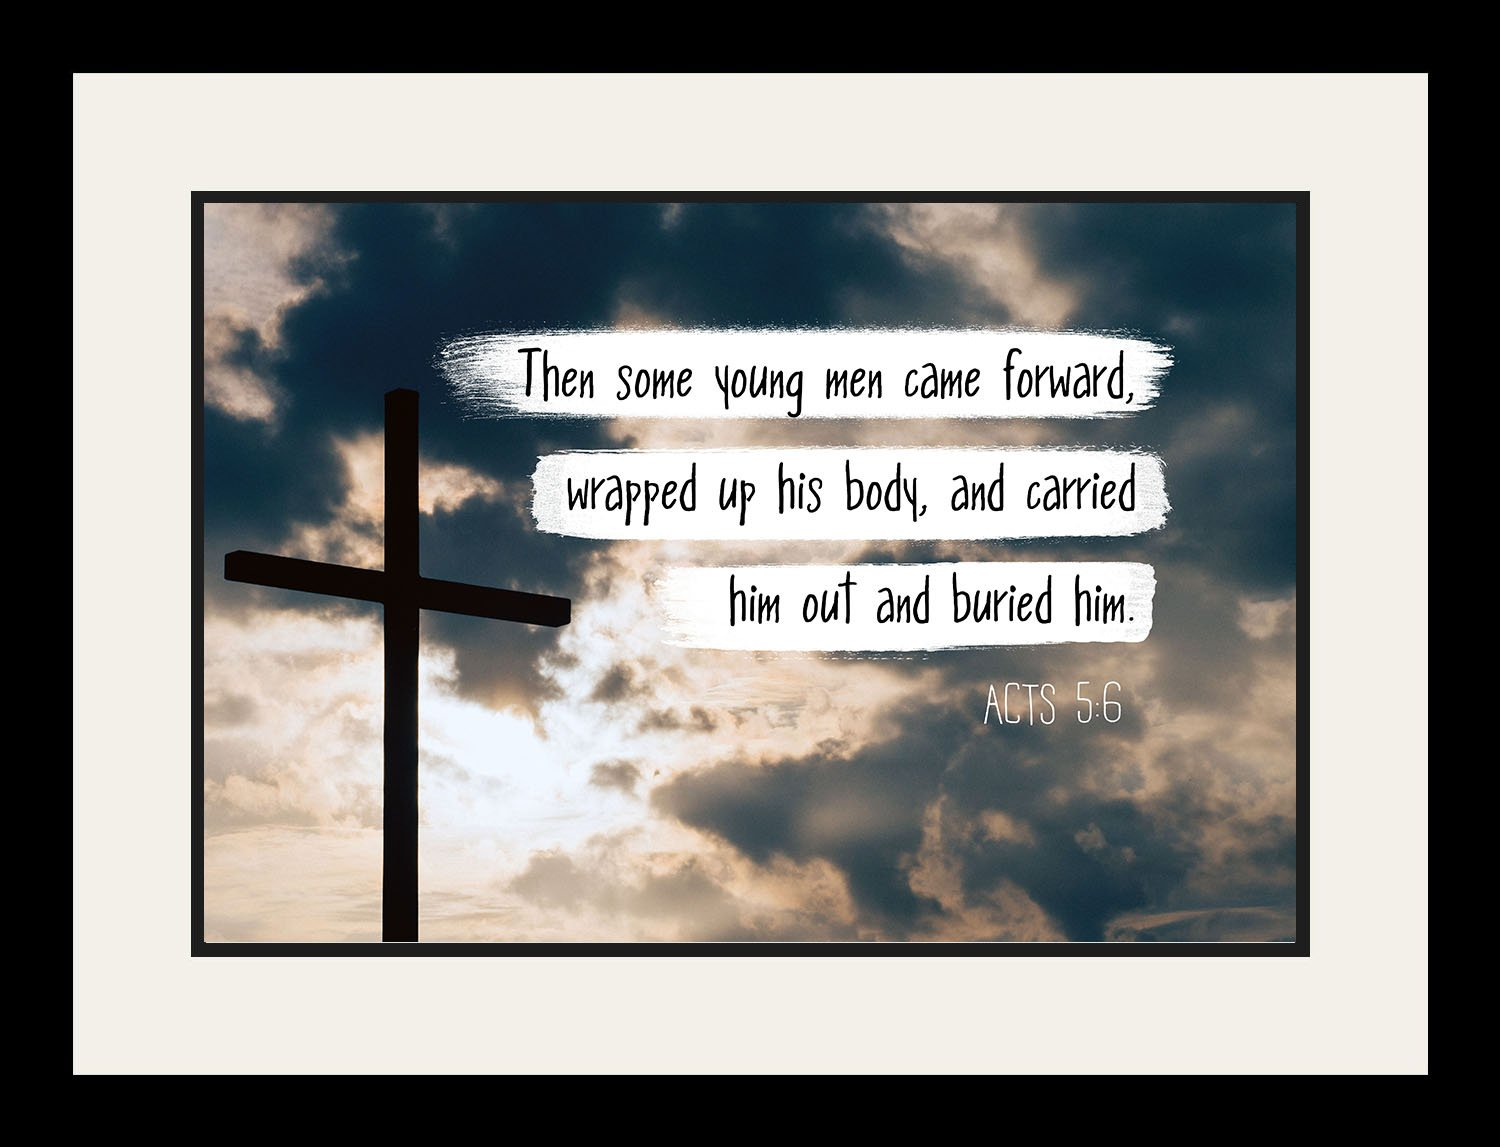 Acts 5:6 Wrapped up his body, - Christian Poster, Print, Picture or Framed Wall Art Decor - Bible Verse Collection - Religious Gift for Holidays Christmas Baptism (19x25 Framed)